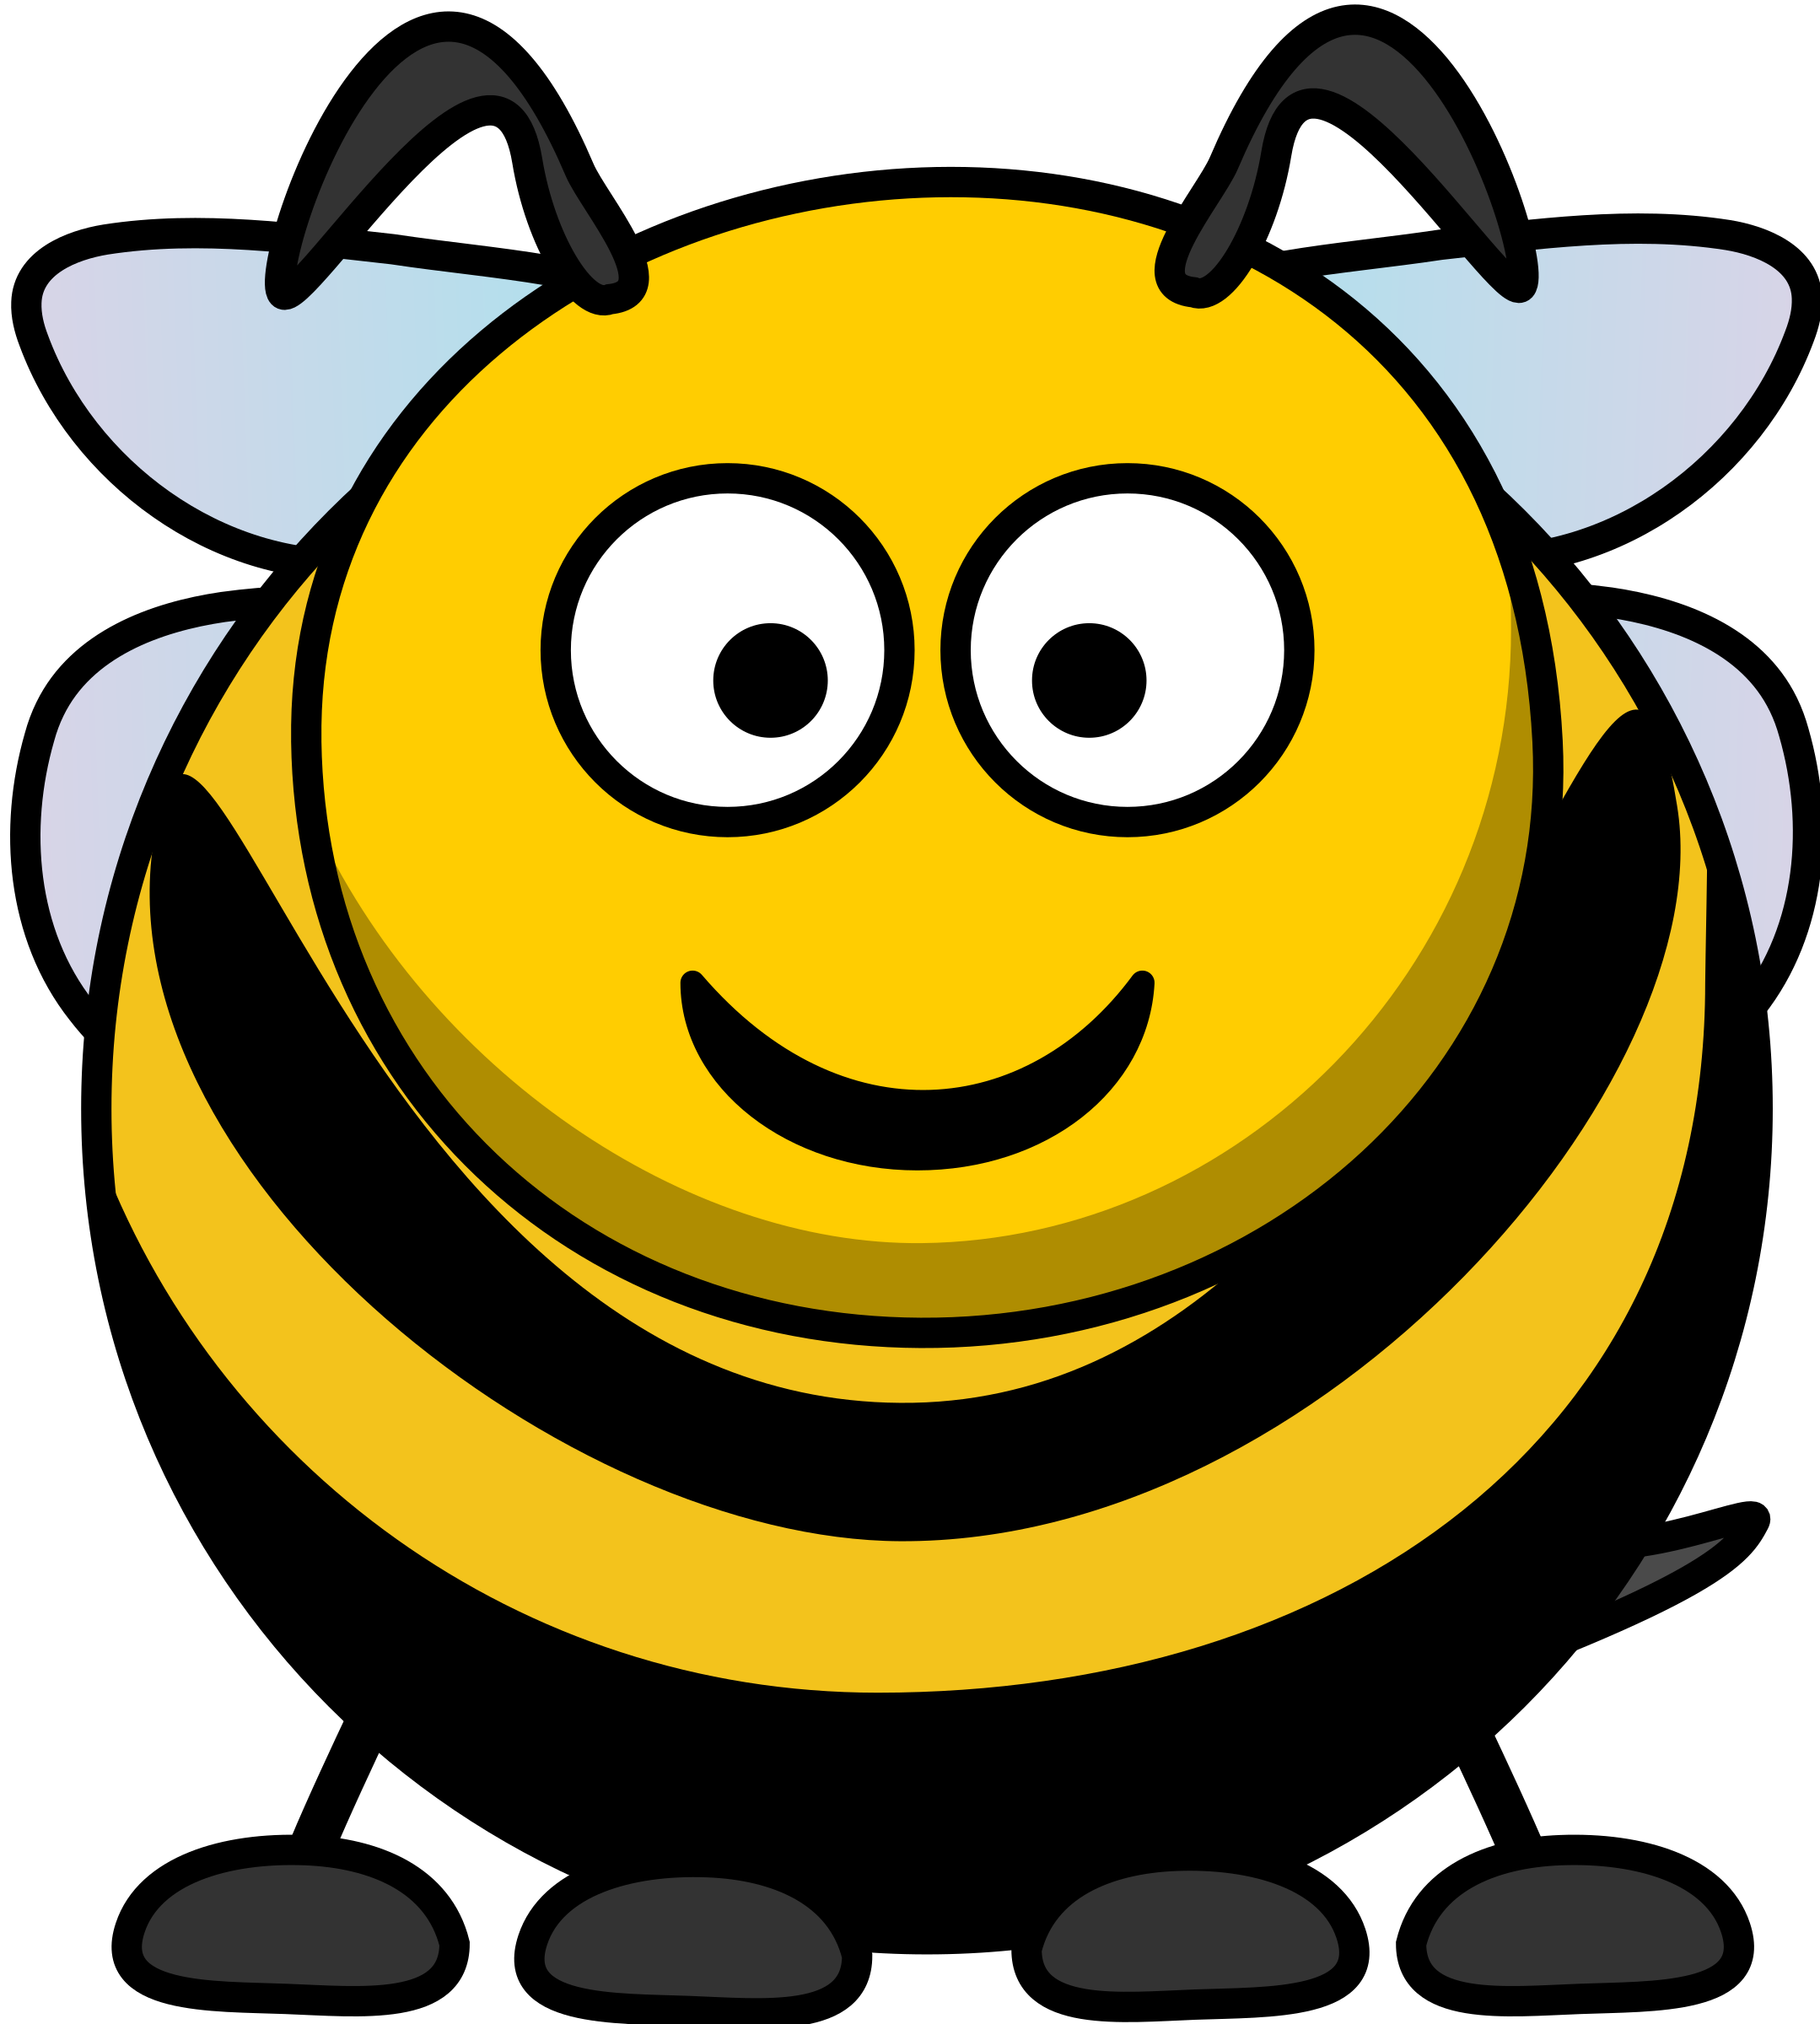 Happy face flower clipart graphic black and white stock Face Clipart bee - Free Clipart on Dumielauxepices.net graphic black and white stock